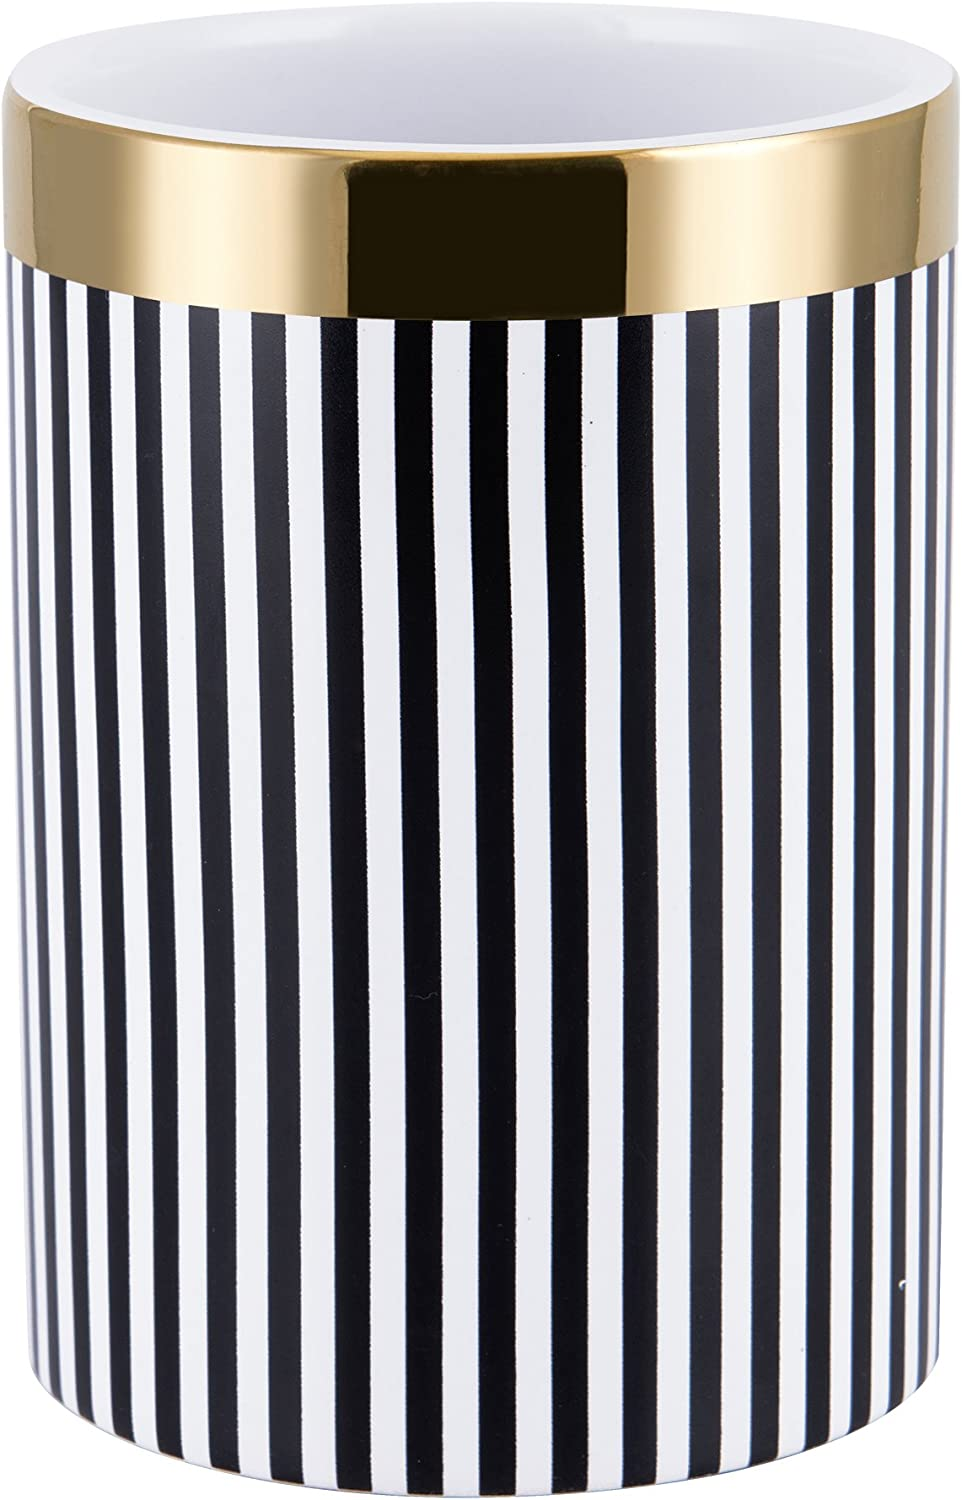 Allure Home Creations Derby Tumbler, Black